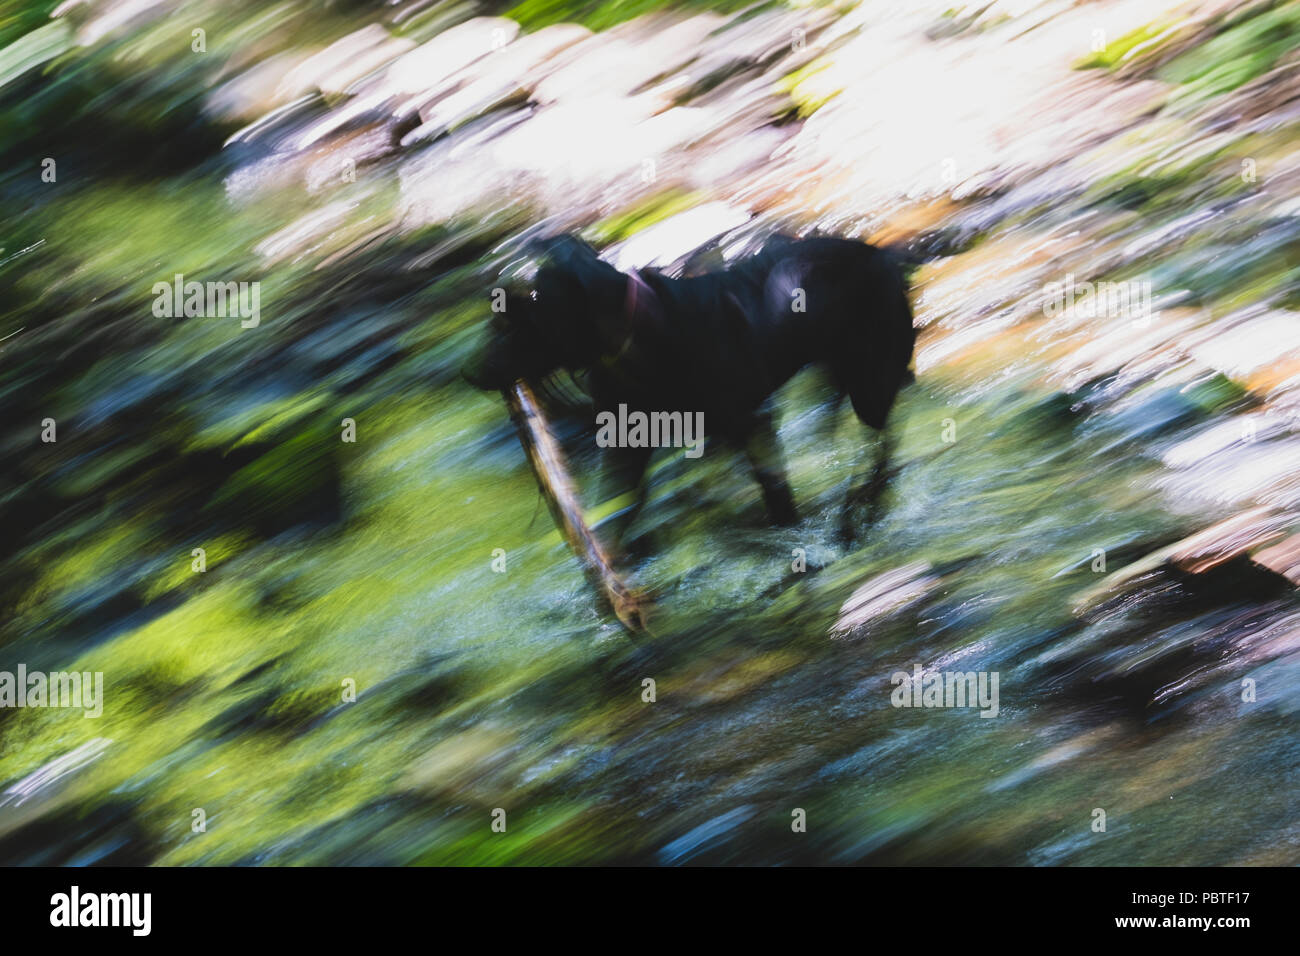 Blurring the image of a surface of the water of the stream illuminated by sunshine in which the dog runs is photographed on long endurance. - Stock Image